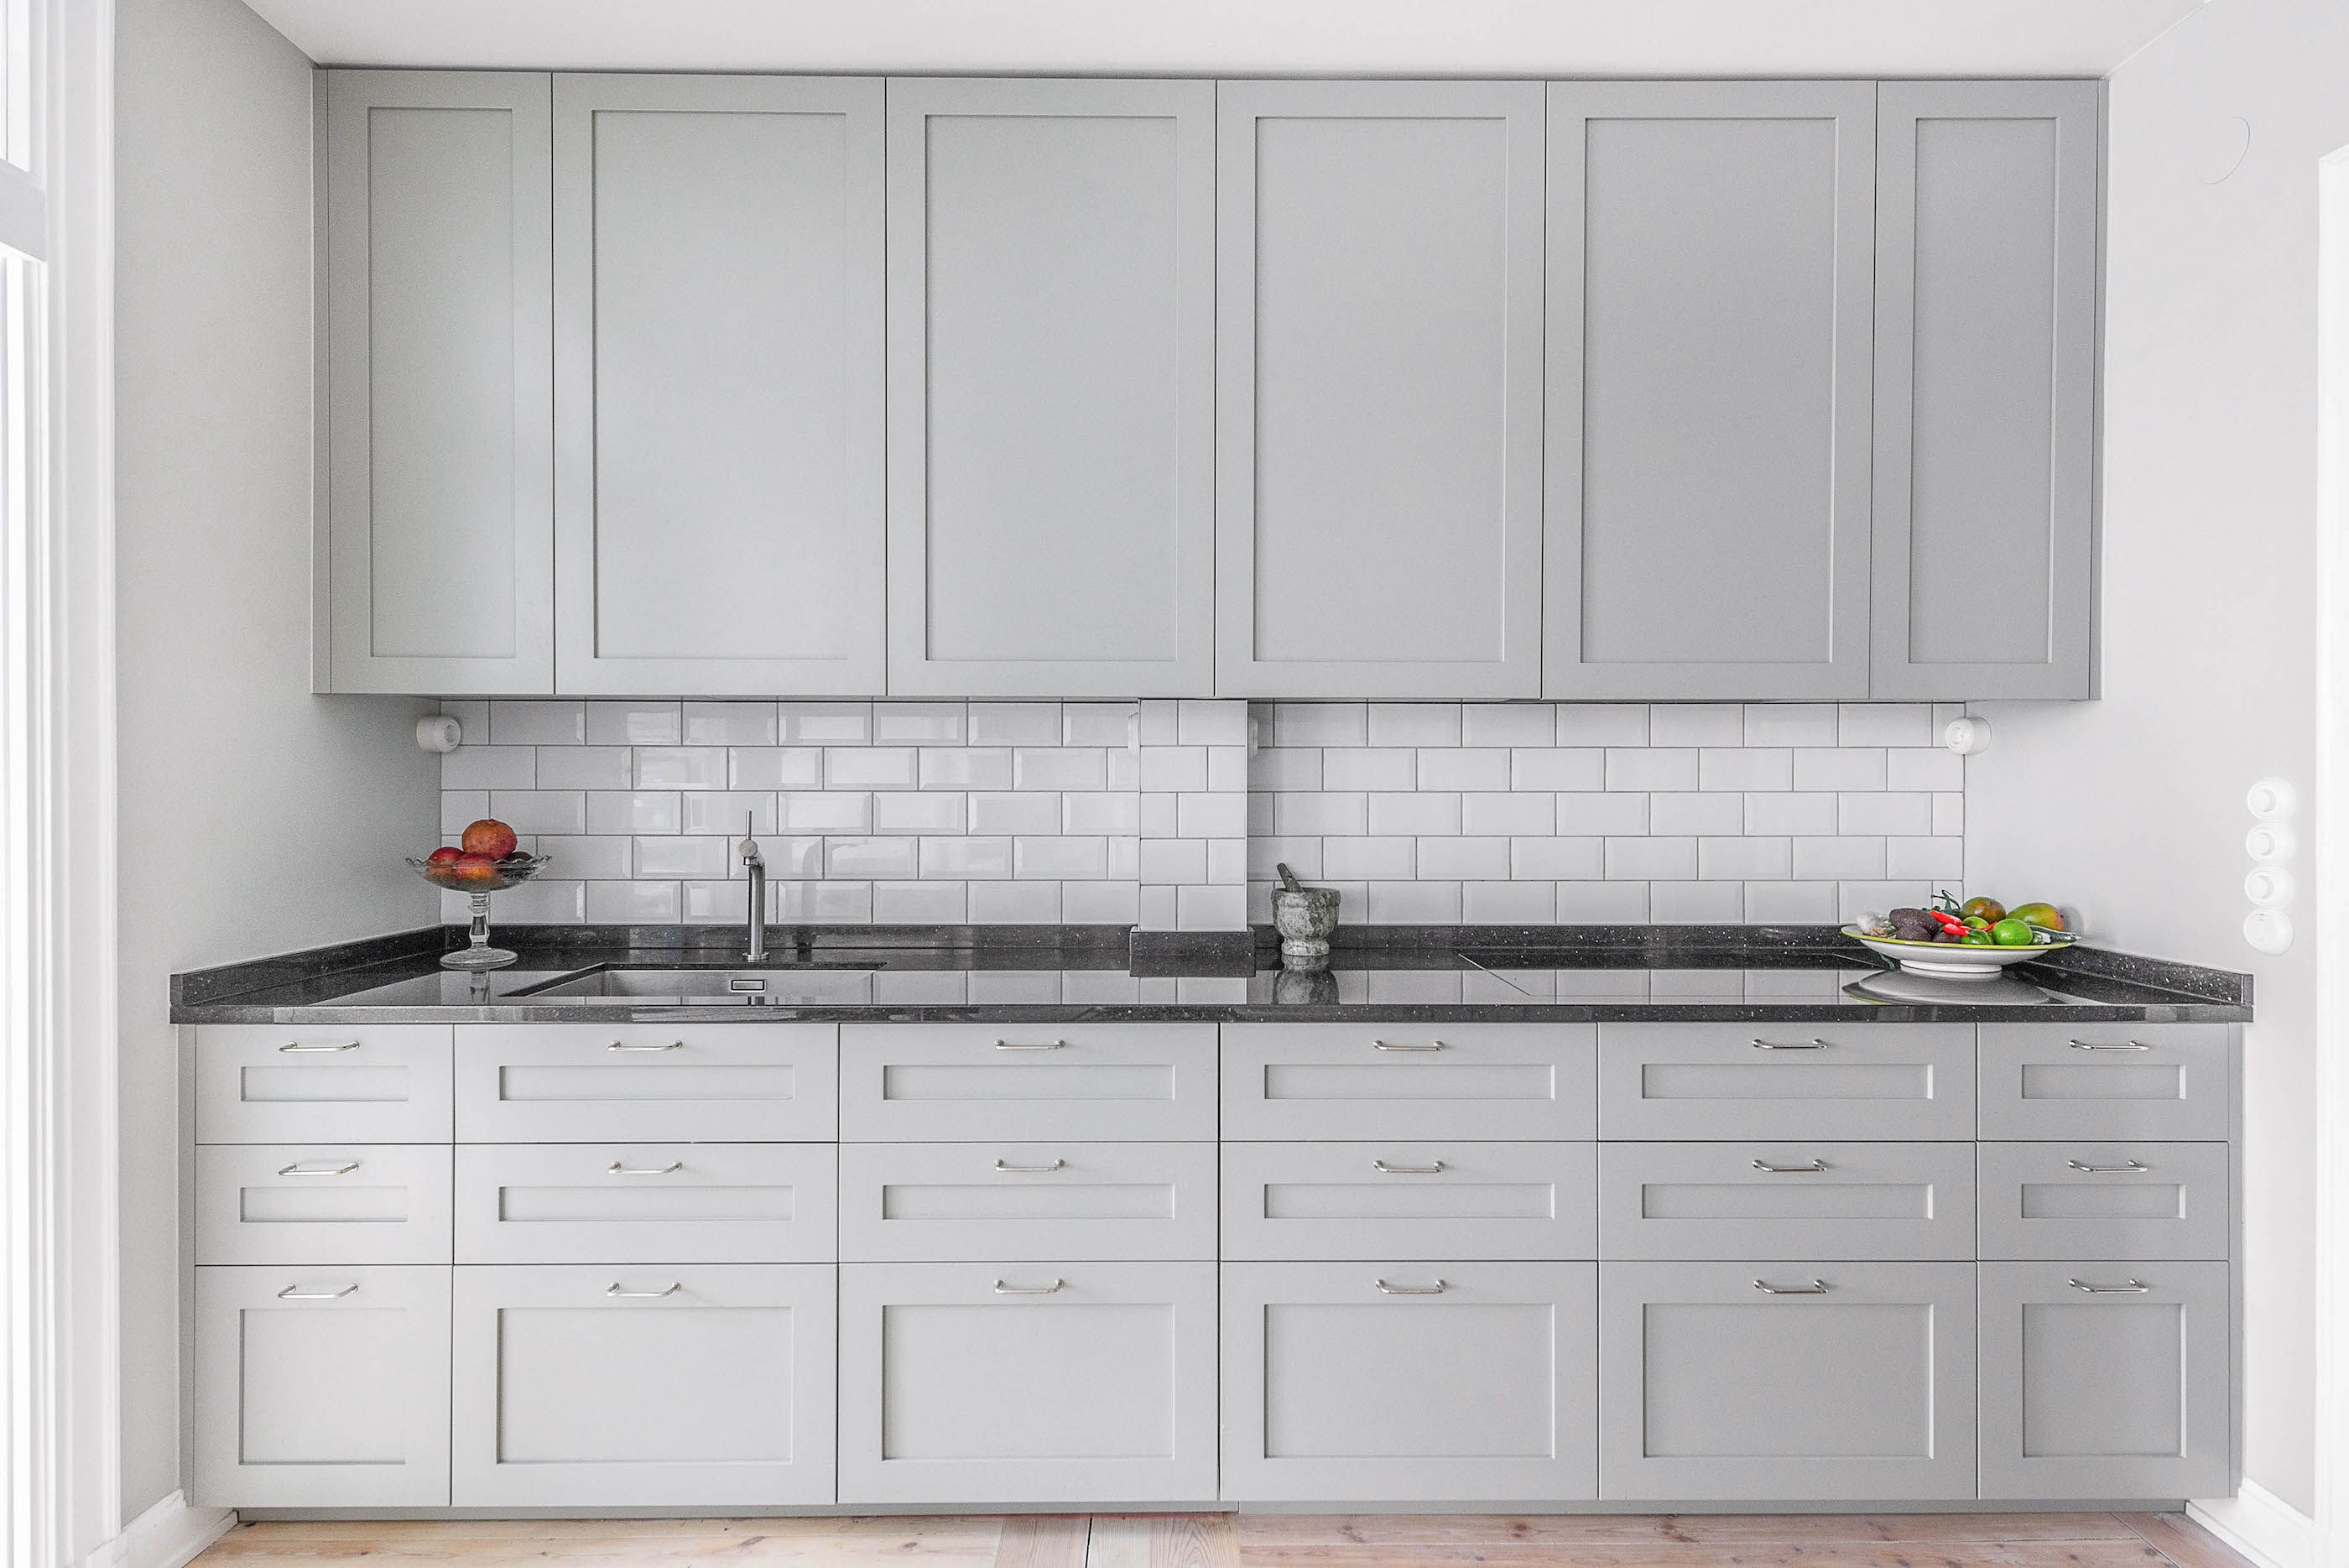 Custom Made Fronts For Ikea Kitchen Cabinet Frames